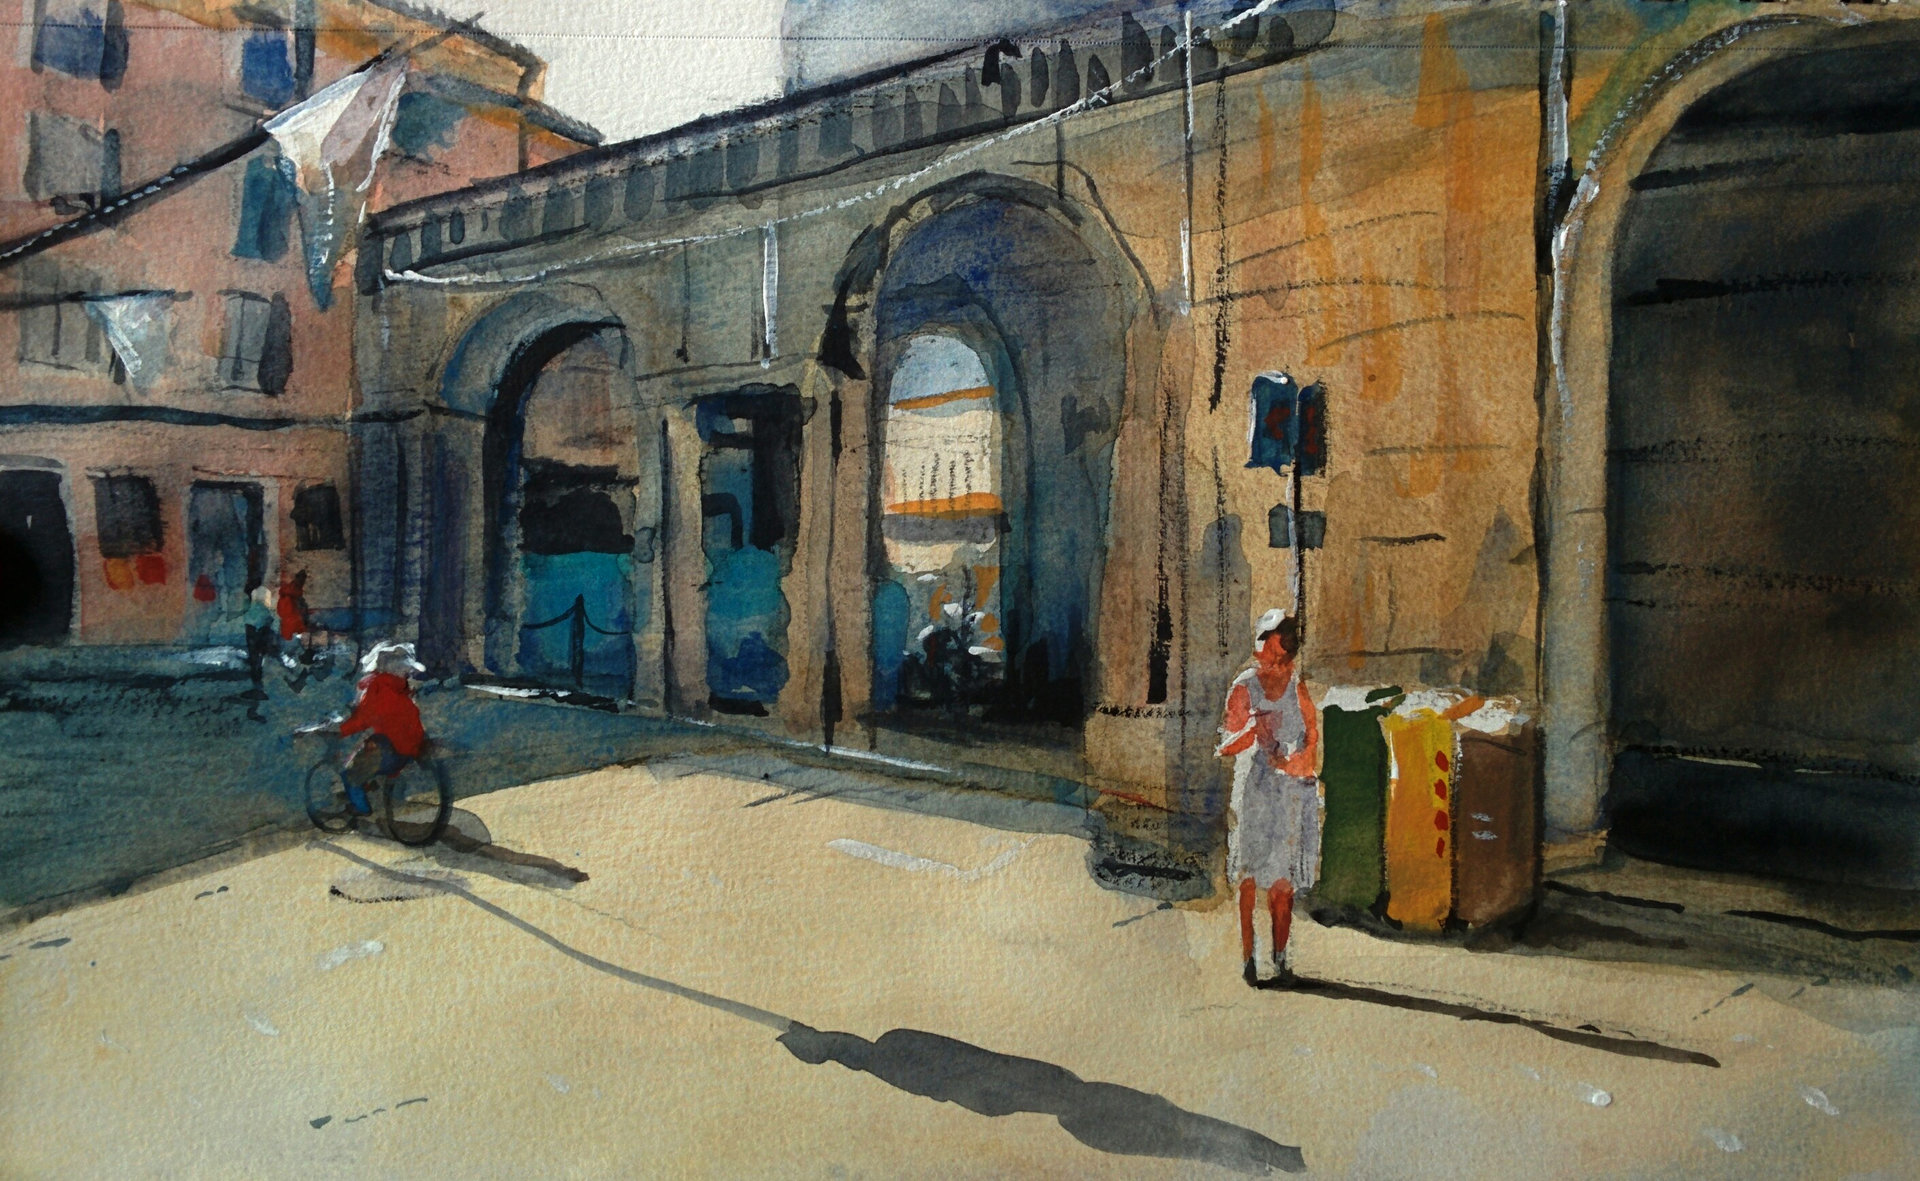 Paolo giandoso watercolor 04